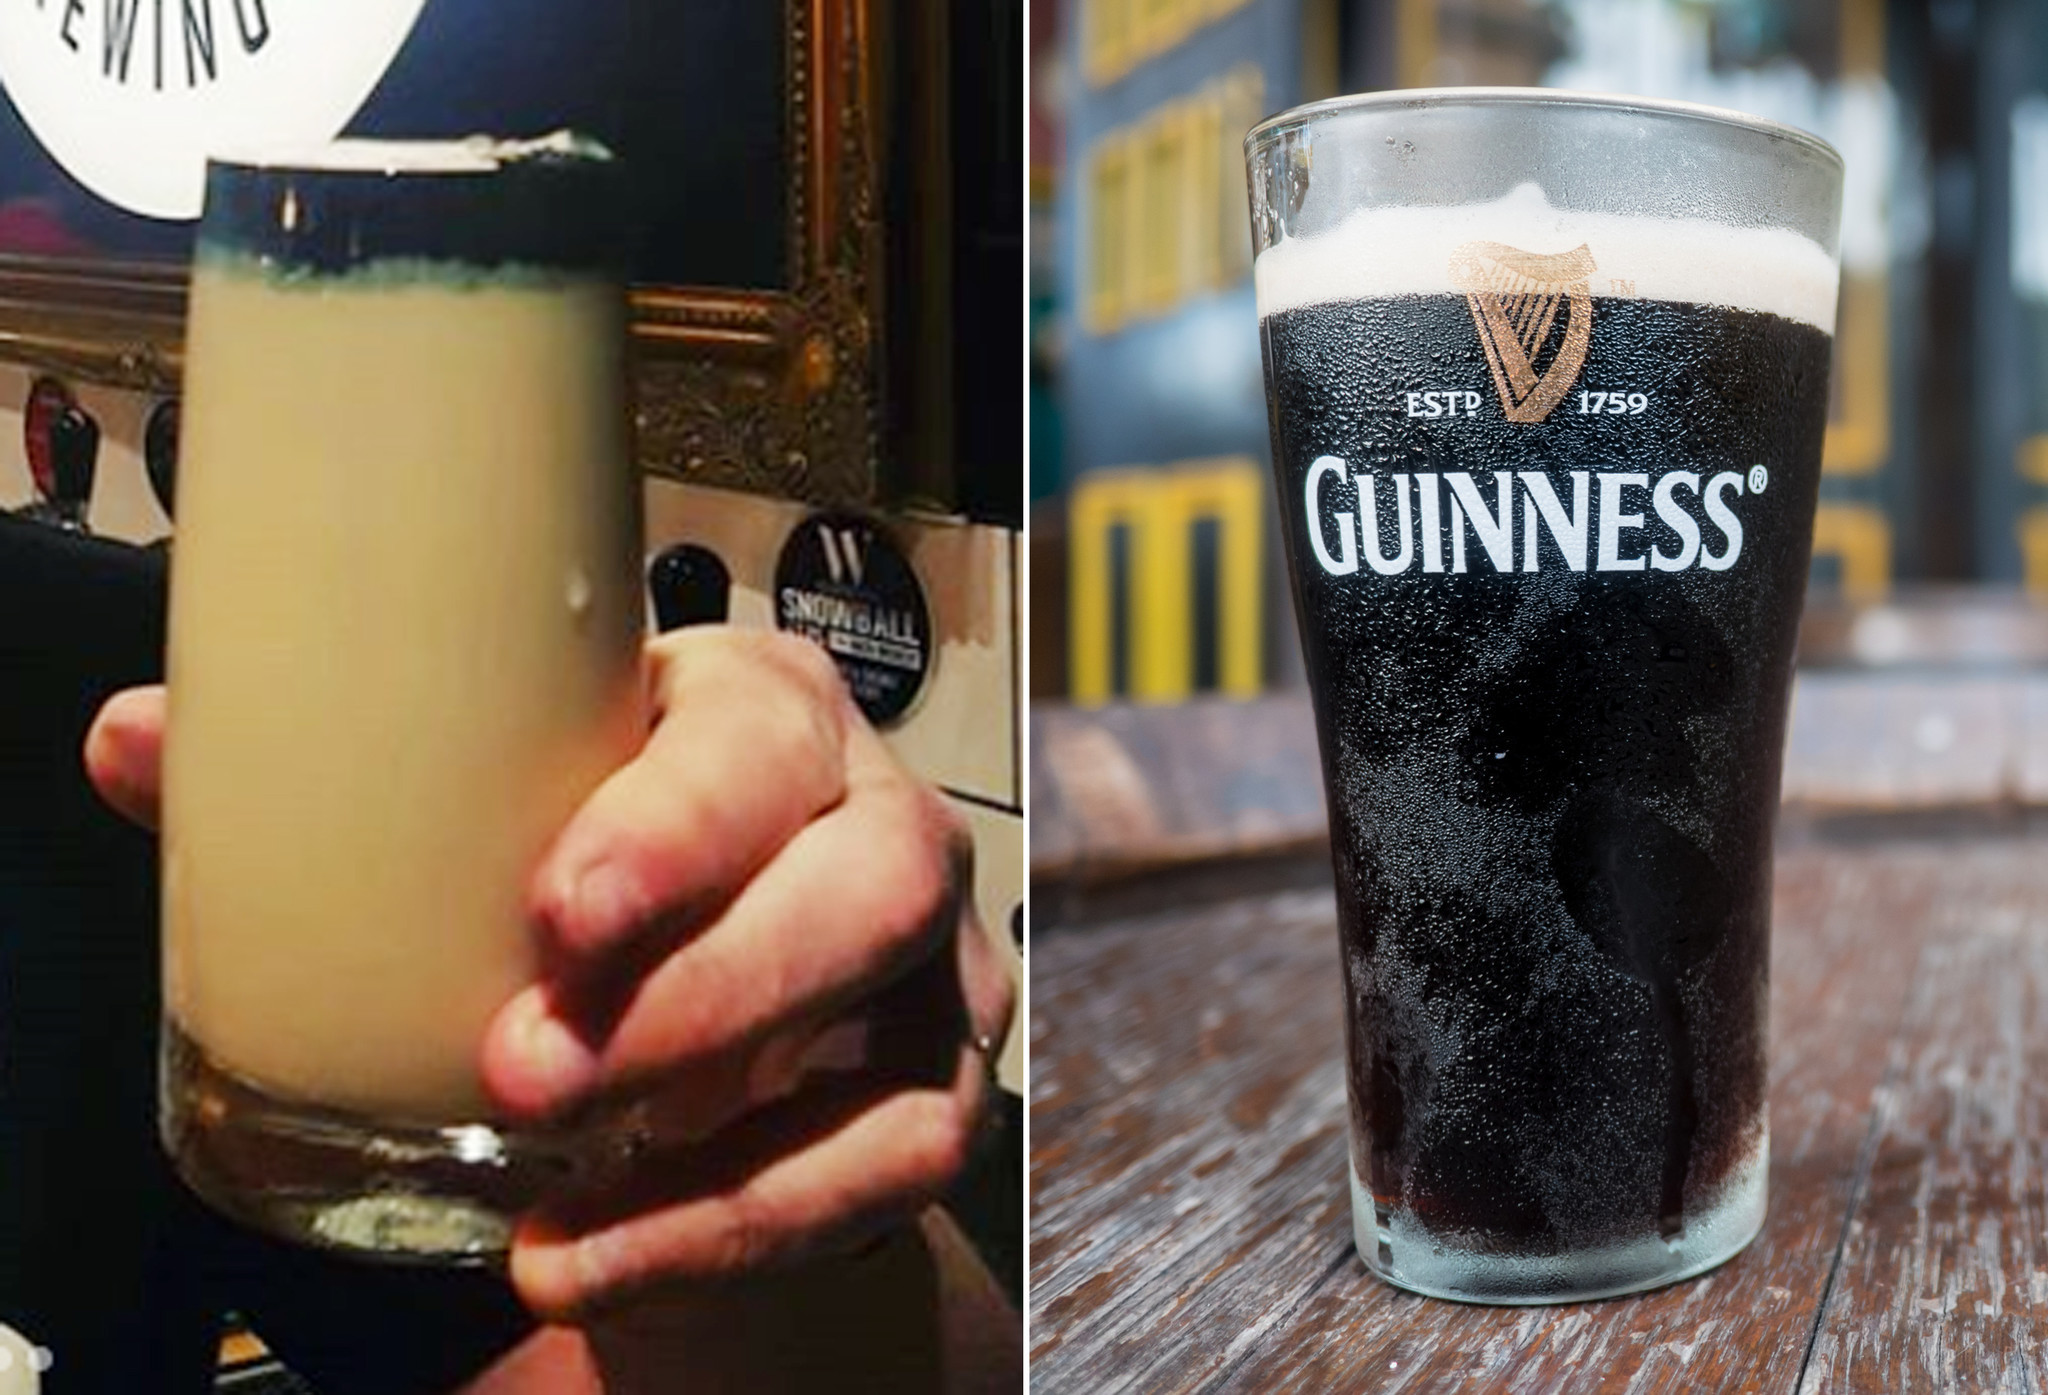 'Reverse Guinness' has beer drinkers all confused